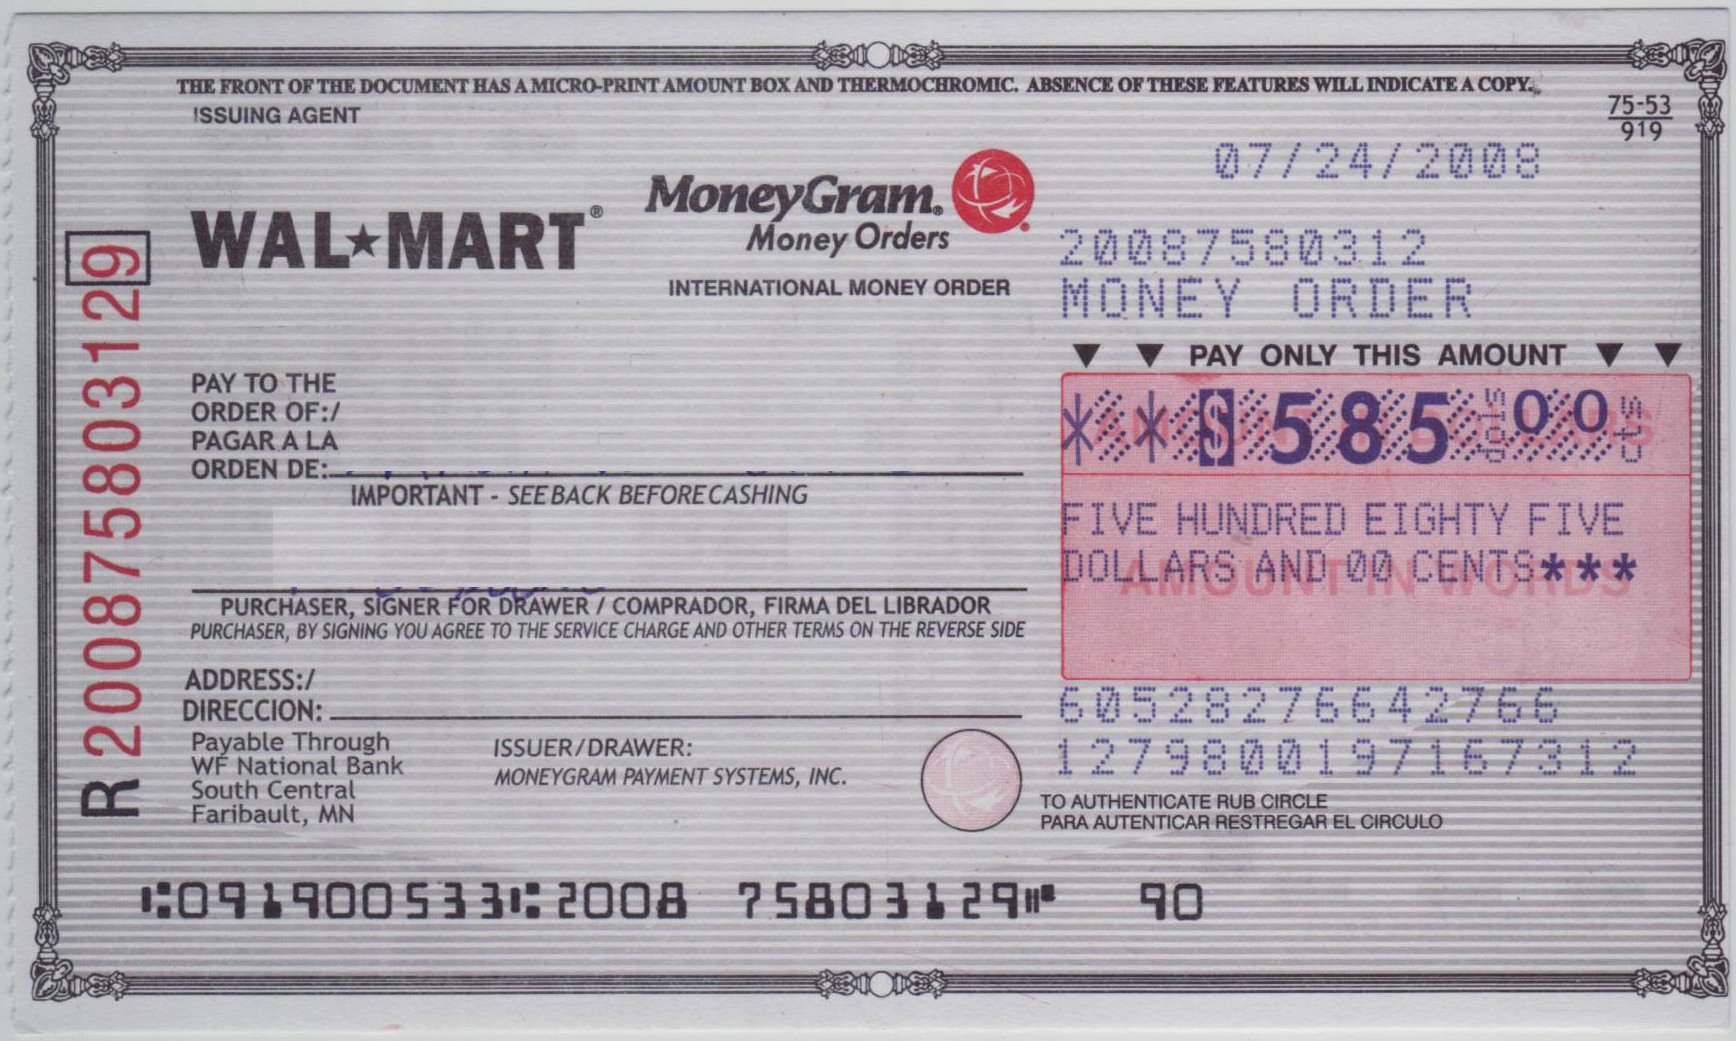 Check Template Filled Out Elegant How to Fill Out A Moneygram Money order Mkrdfo